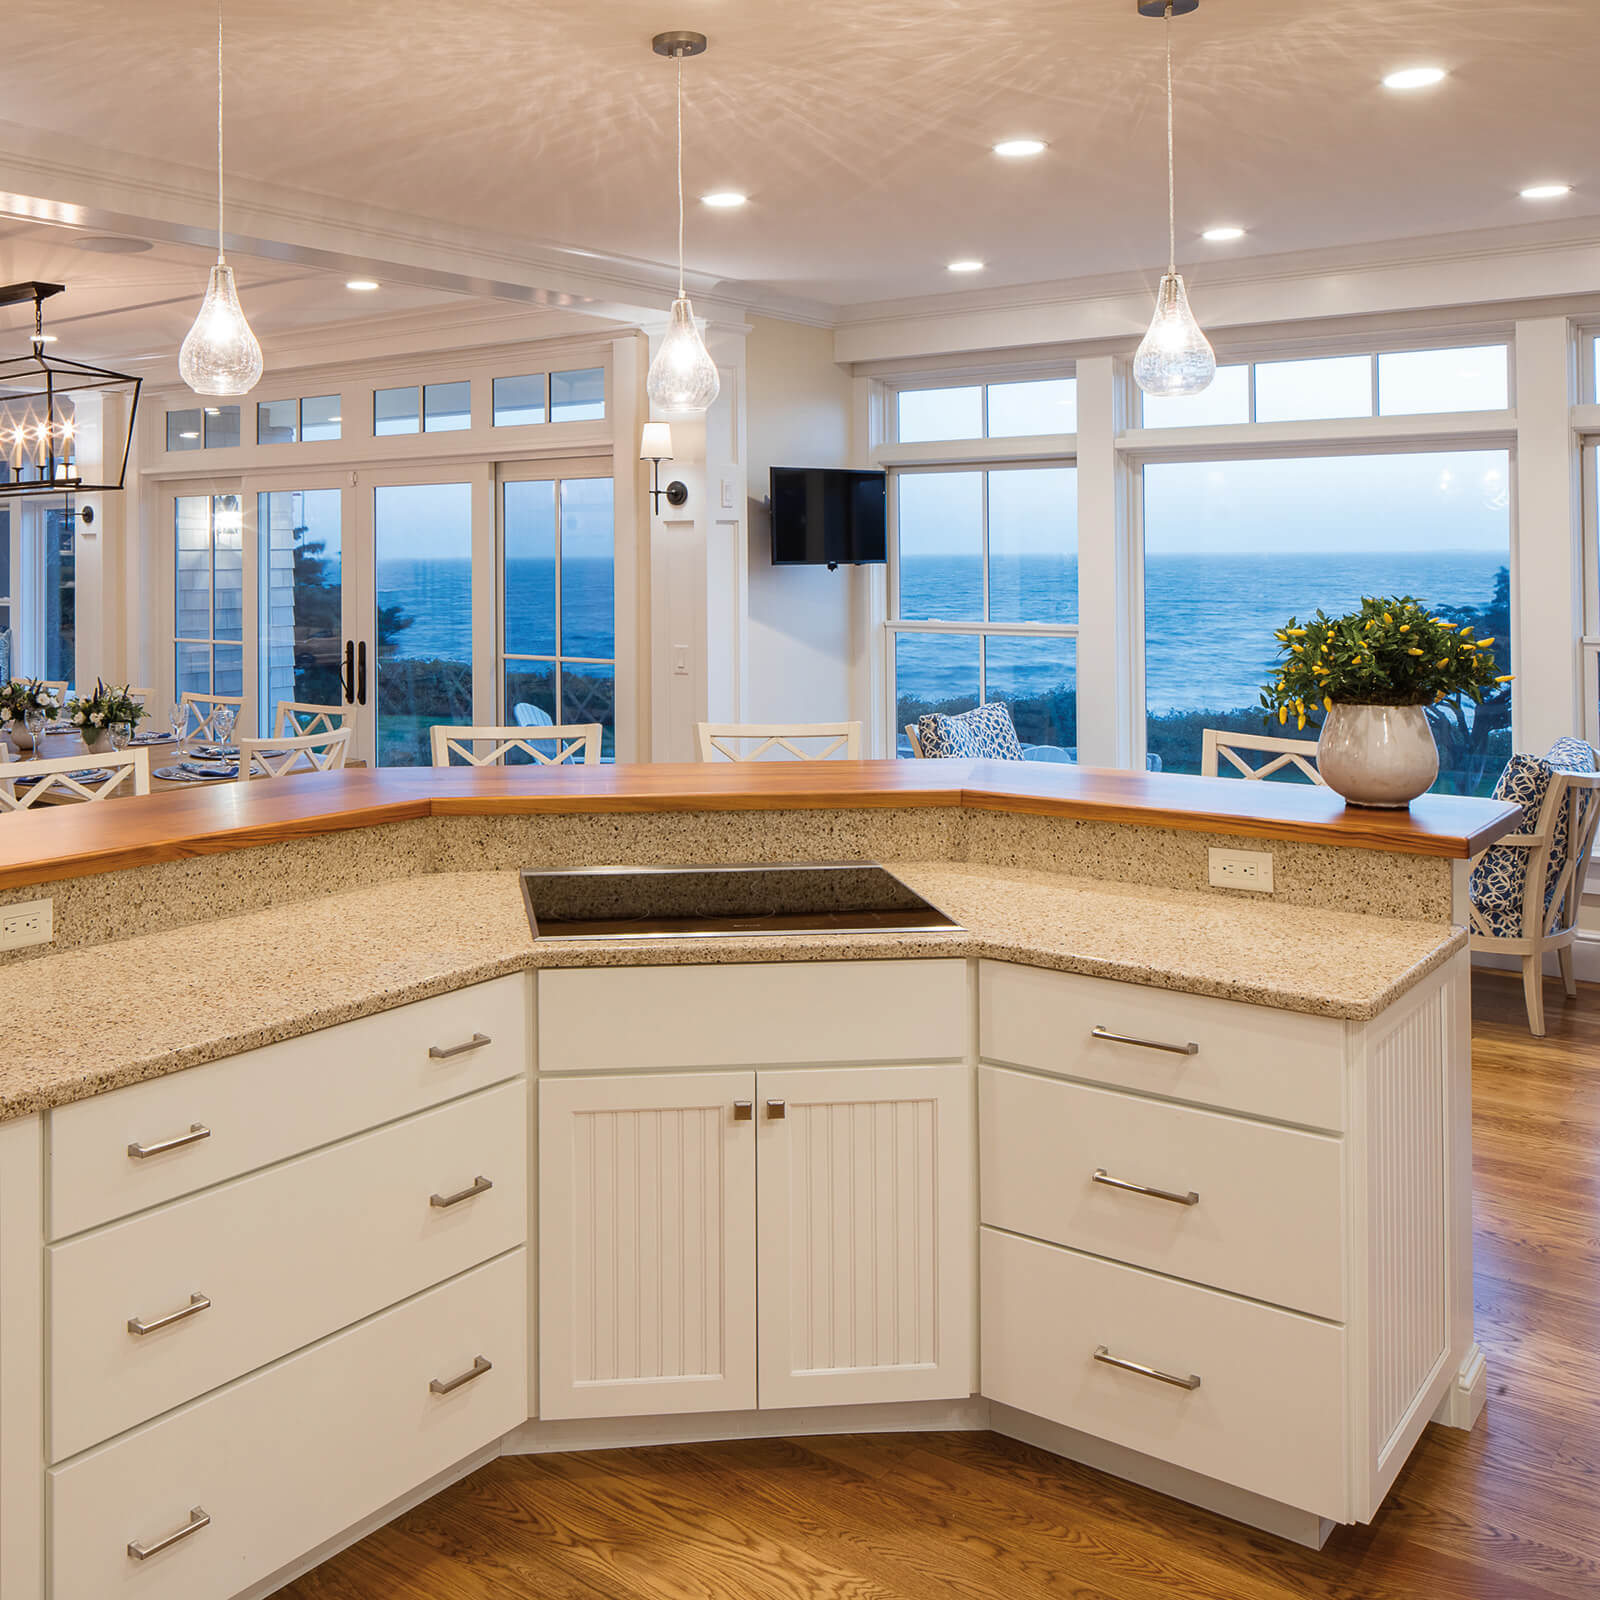 Kitchen view of waterfront home with Marvin Elevate Double Hung Windows and Elevate Sliding French Door